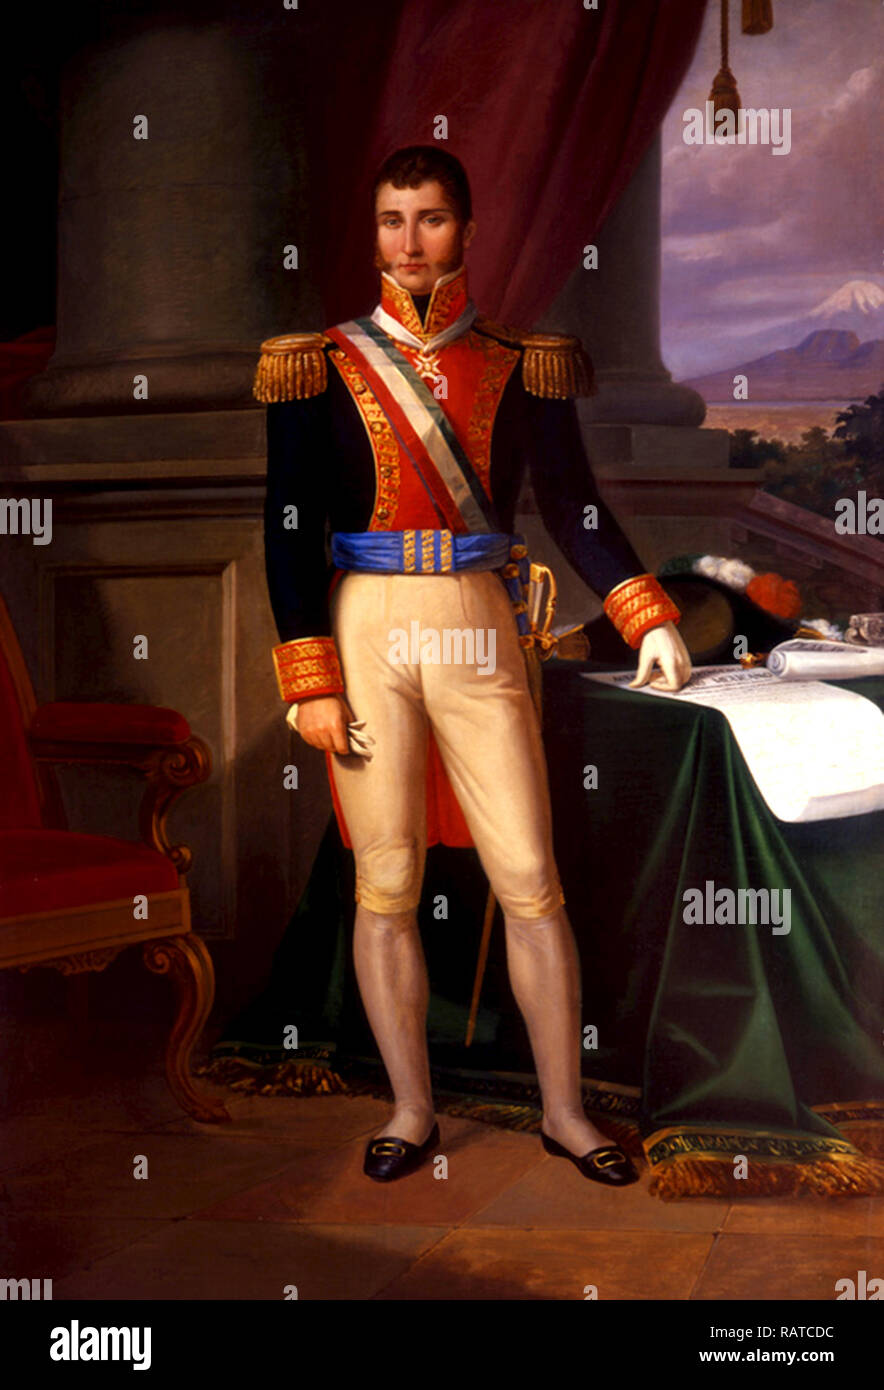 Agustín Cosme Damián de Iturbide y Arámburu (1783 – 1824), Augustine of Mexico, Mexican army general and politician - Stock Image